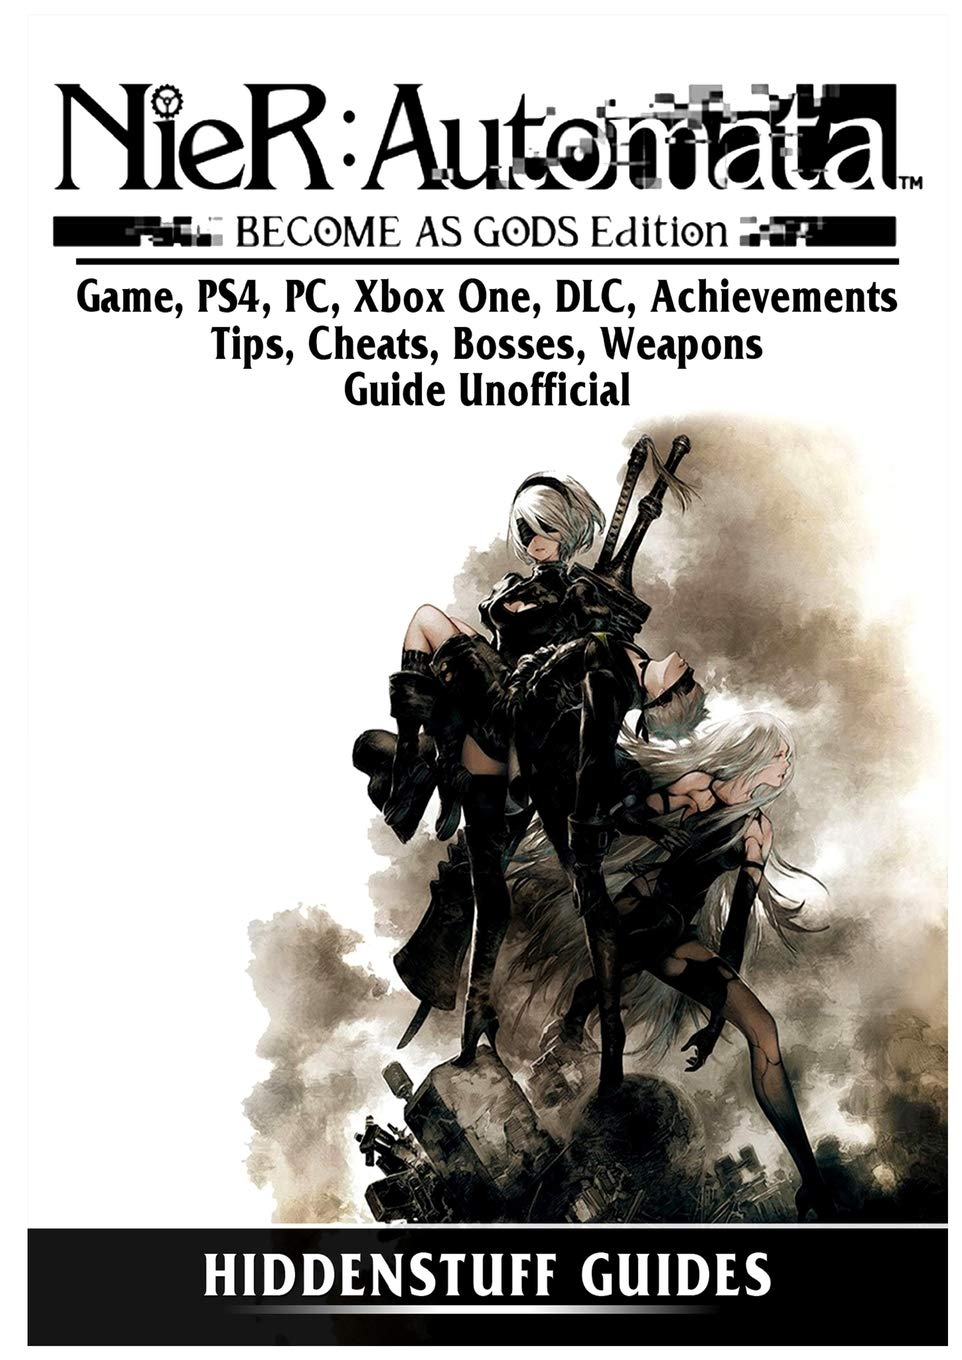 Nier Automata Become As Gods Game, PS4, PC, Xbox One, DLC ...